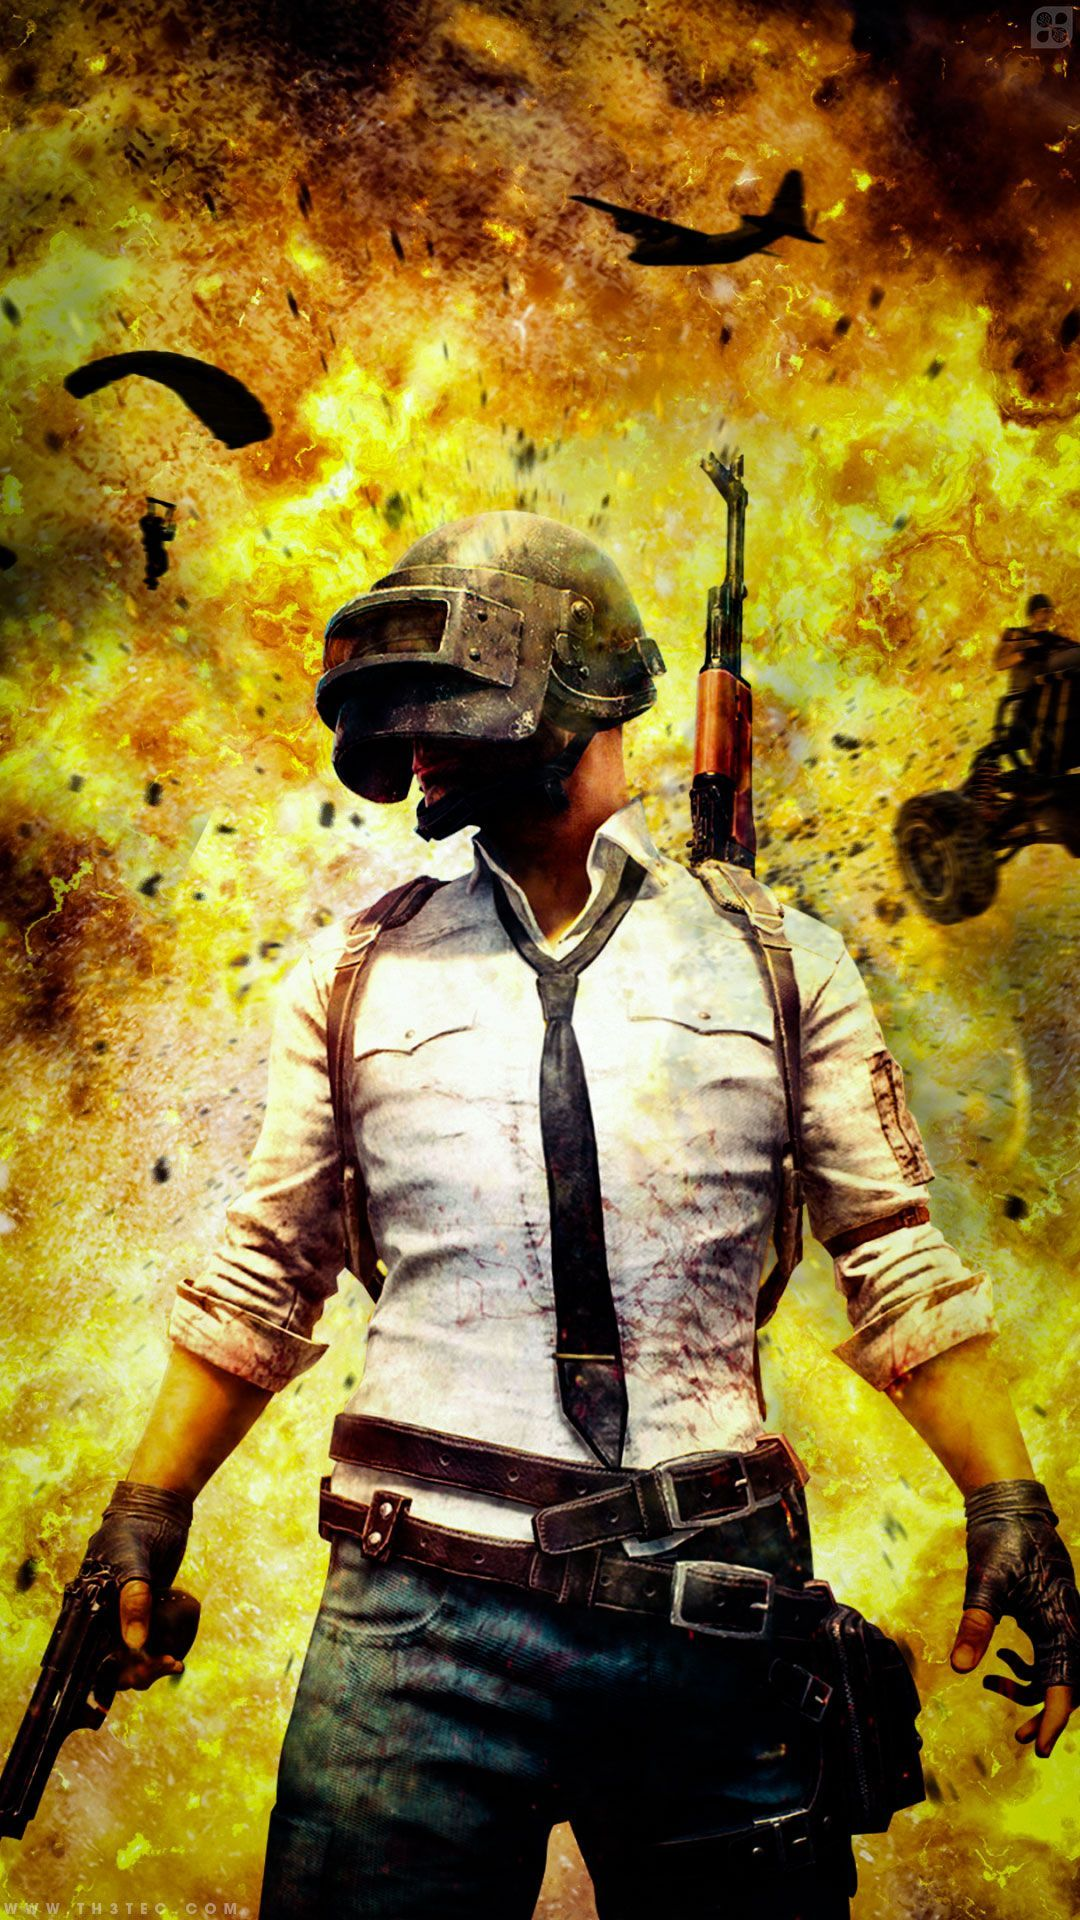 Pubg Hd Iphone Wallpapers Hupages Download Iphone Wallpapers Wallpaper Downloads Mobile Wallpaper Hd Wallpapers For Mobile